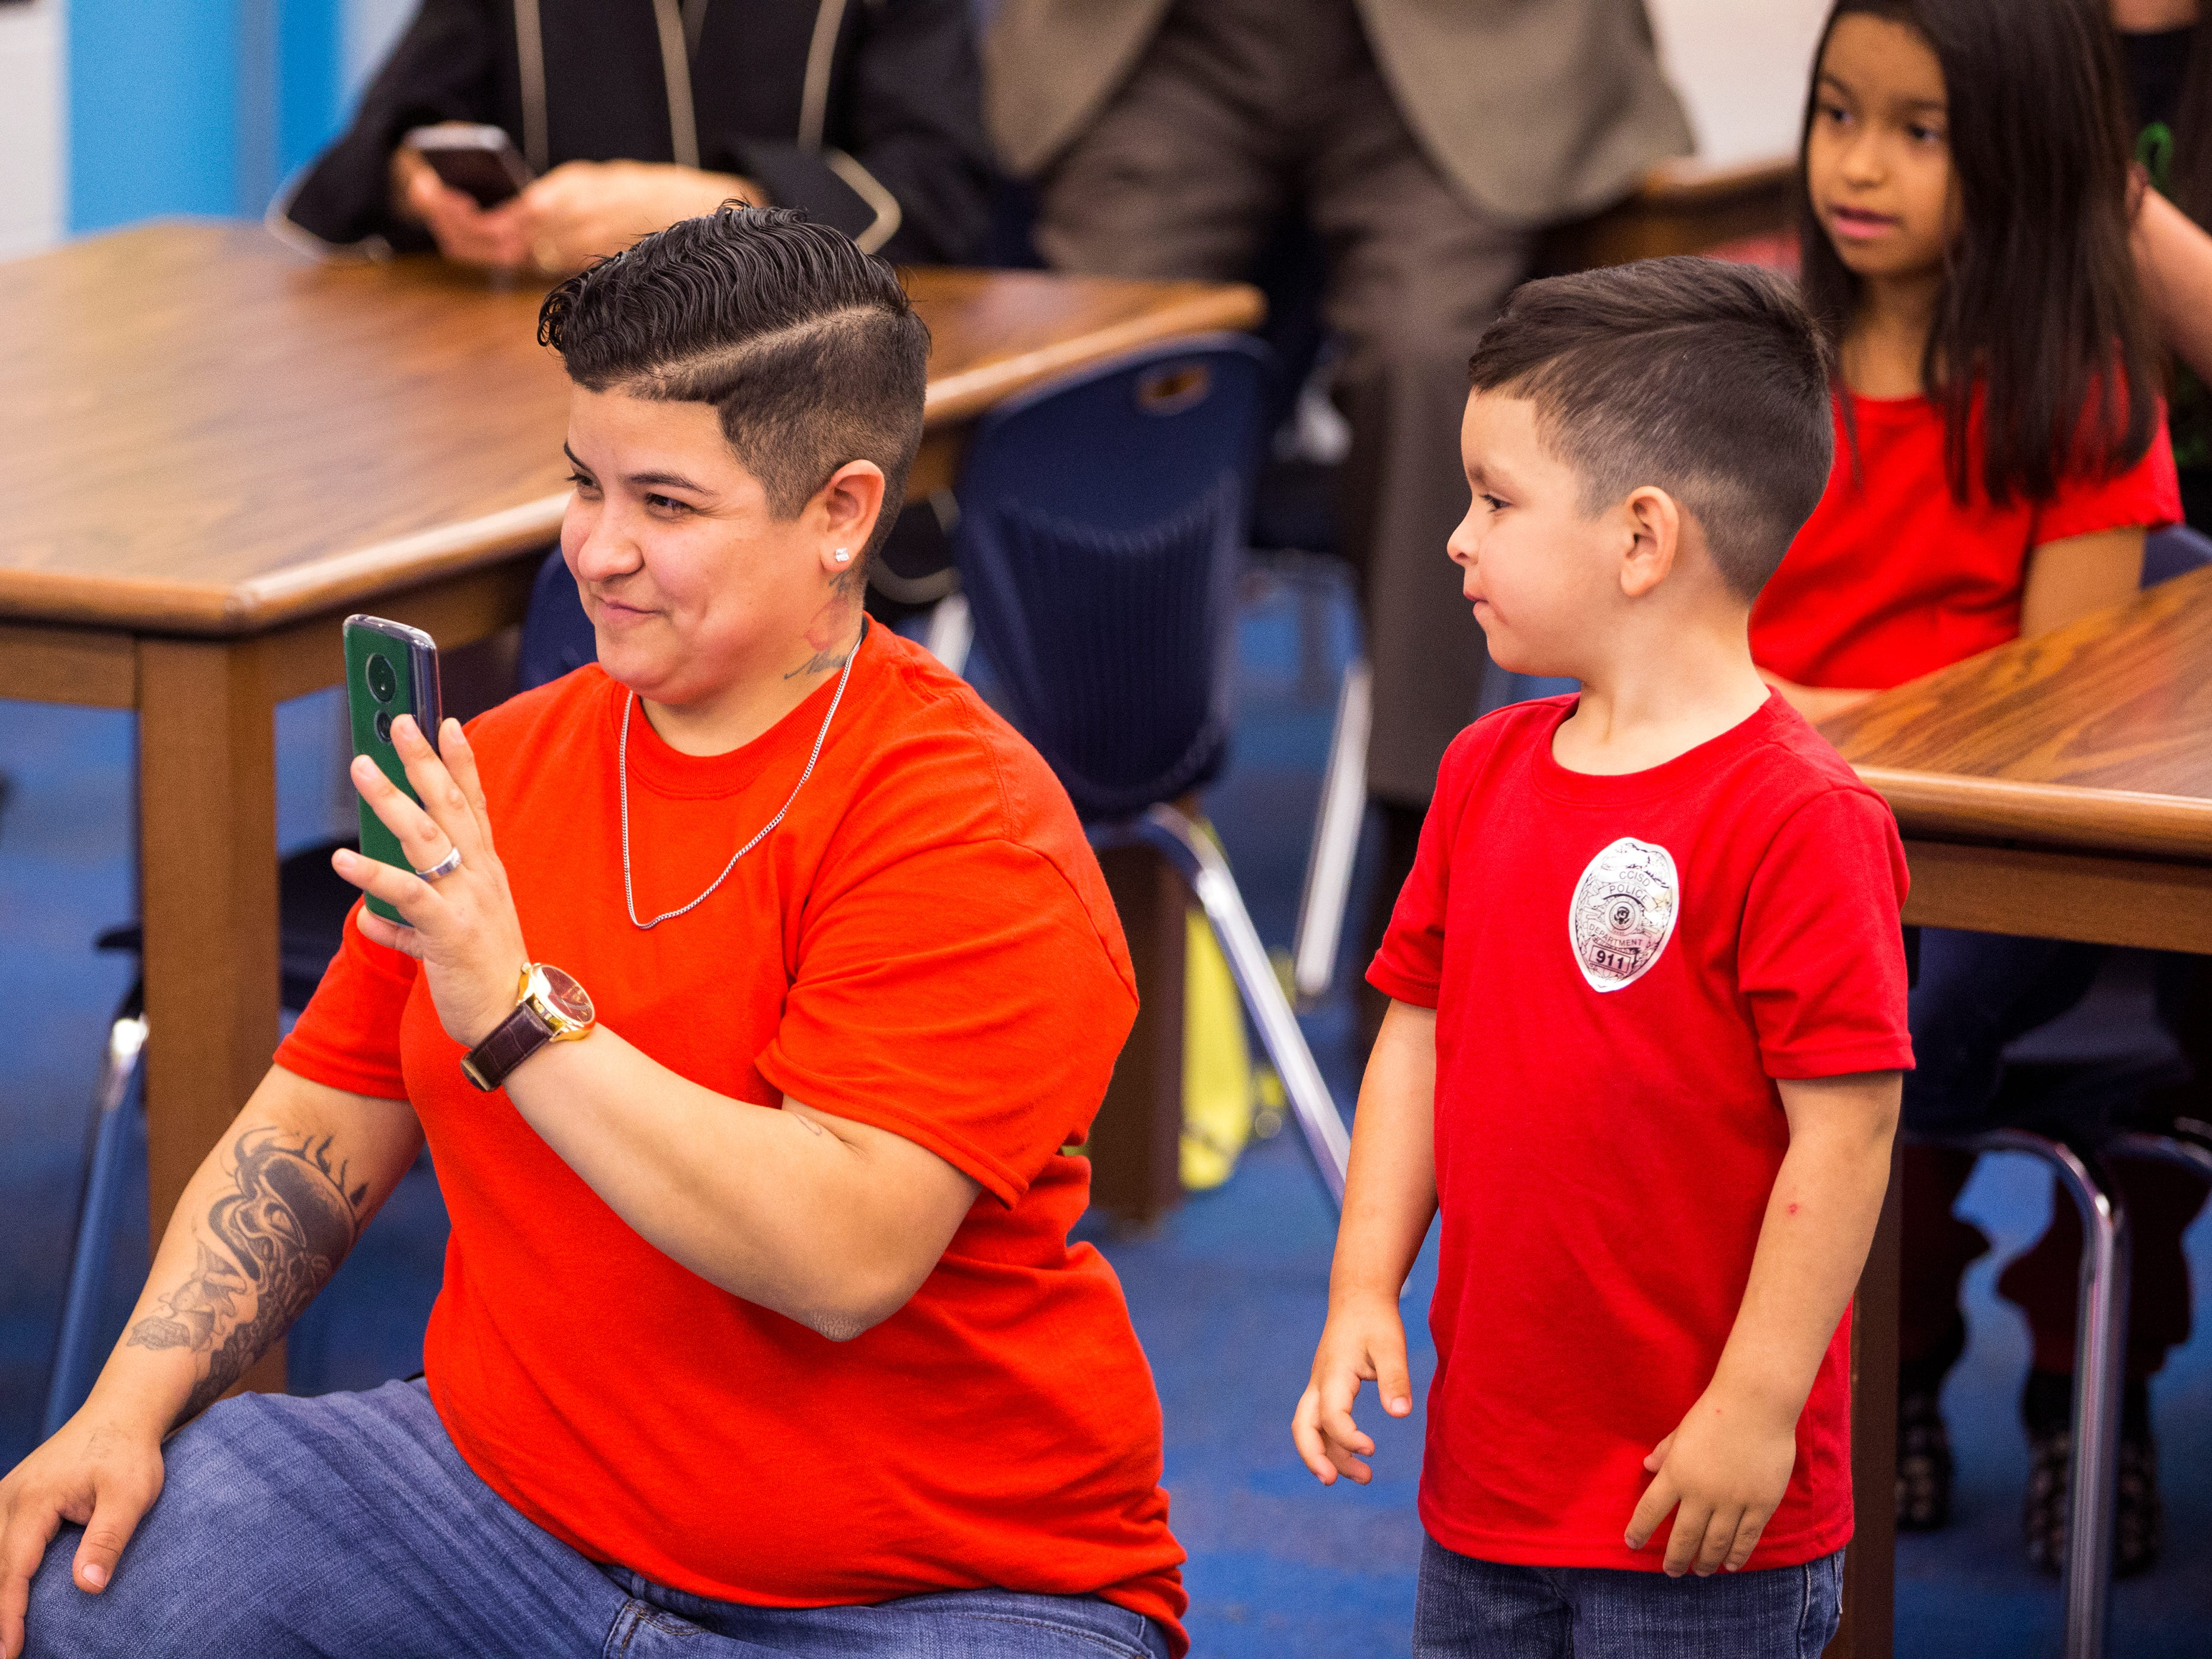 """Roberta Hernandez (left) and Calvin Hernandez, 3, watch while Ethann Valdez, 9, is surprised with a message from a television personality on """"Ghost Hunters"""" folliwing a parade in Ethann's honor at Garcia Elementary School on Wednesday, April 17, 2019. Diagnosed at the age of five with geleophysic dysplasia (known as dwarfism), Ethann will be out of school for the rest of the year as he undergoes open heart surgery for a valve replacement to the main aorta of his heart. The school wanted to send him off with a """"Best Wishes Parade"""" before he left."""